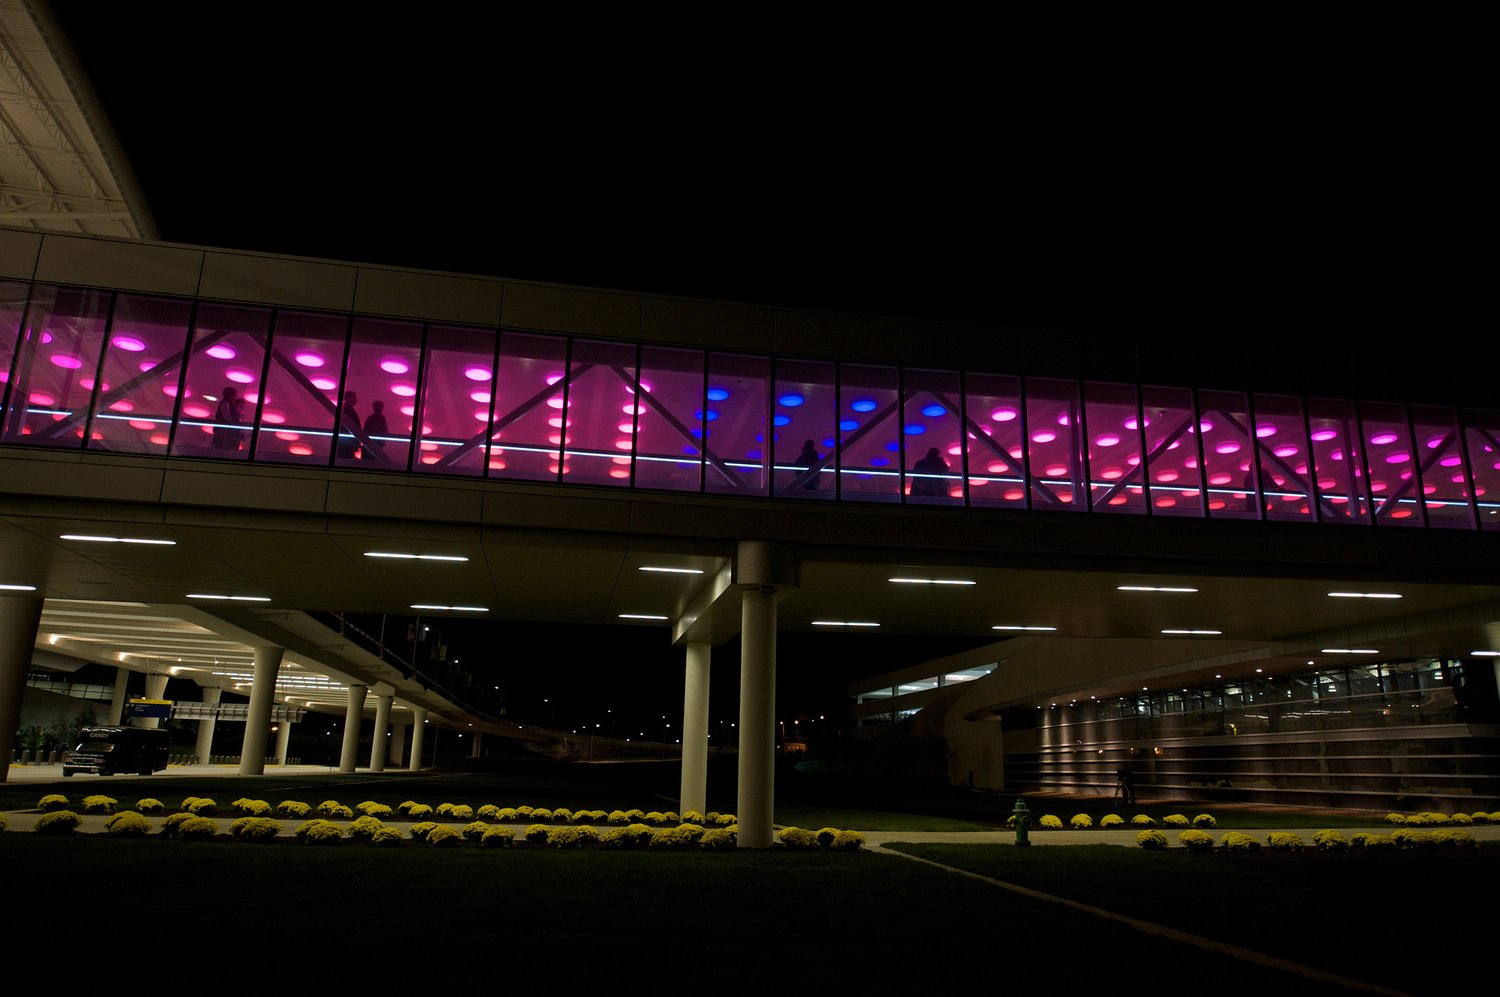 Outside photo of red and blue LED lights at Indianapolis airport